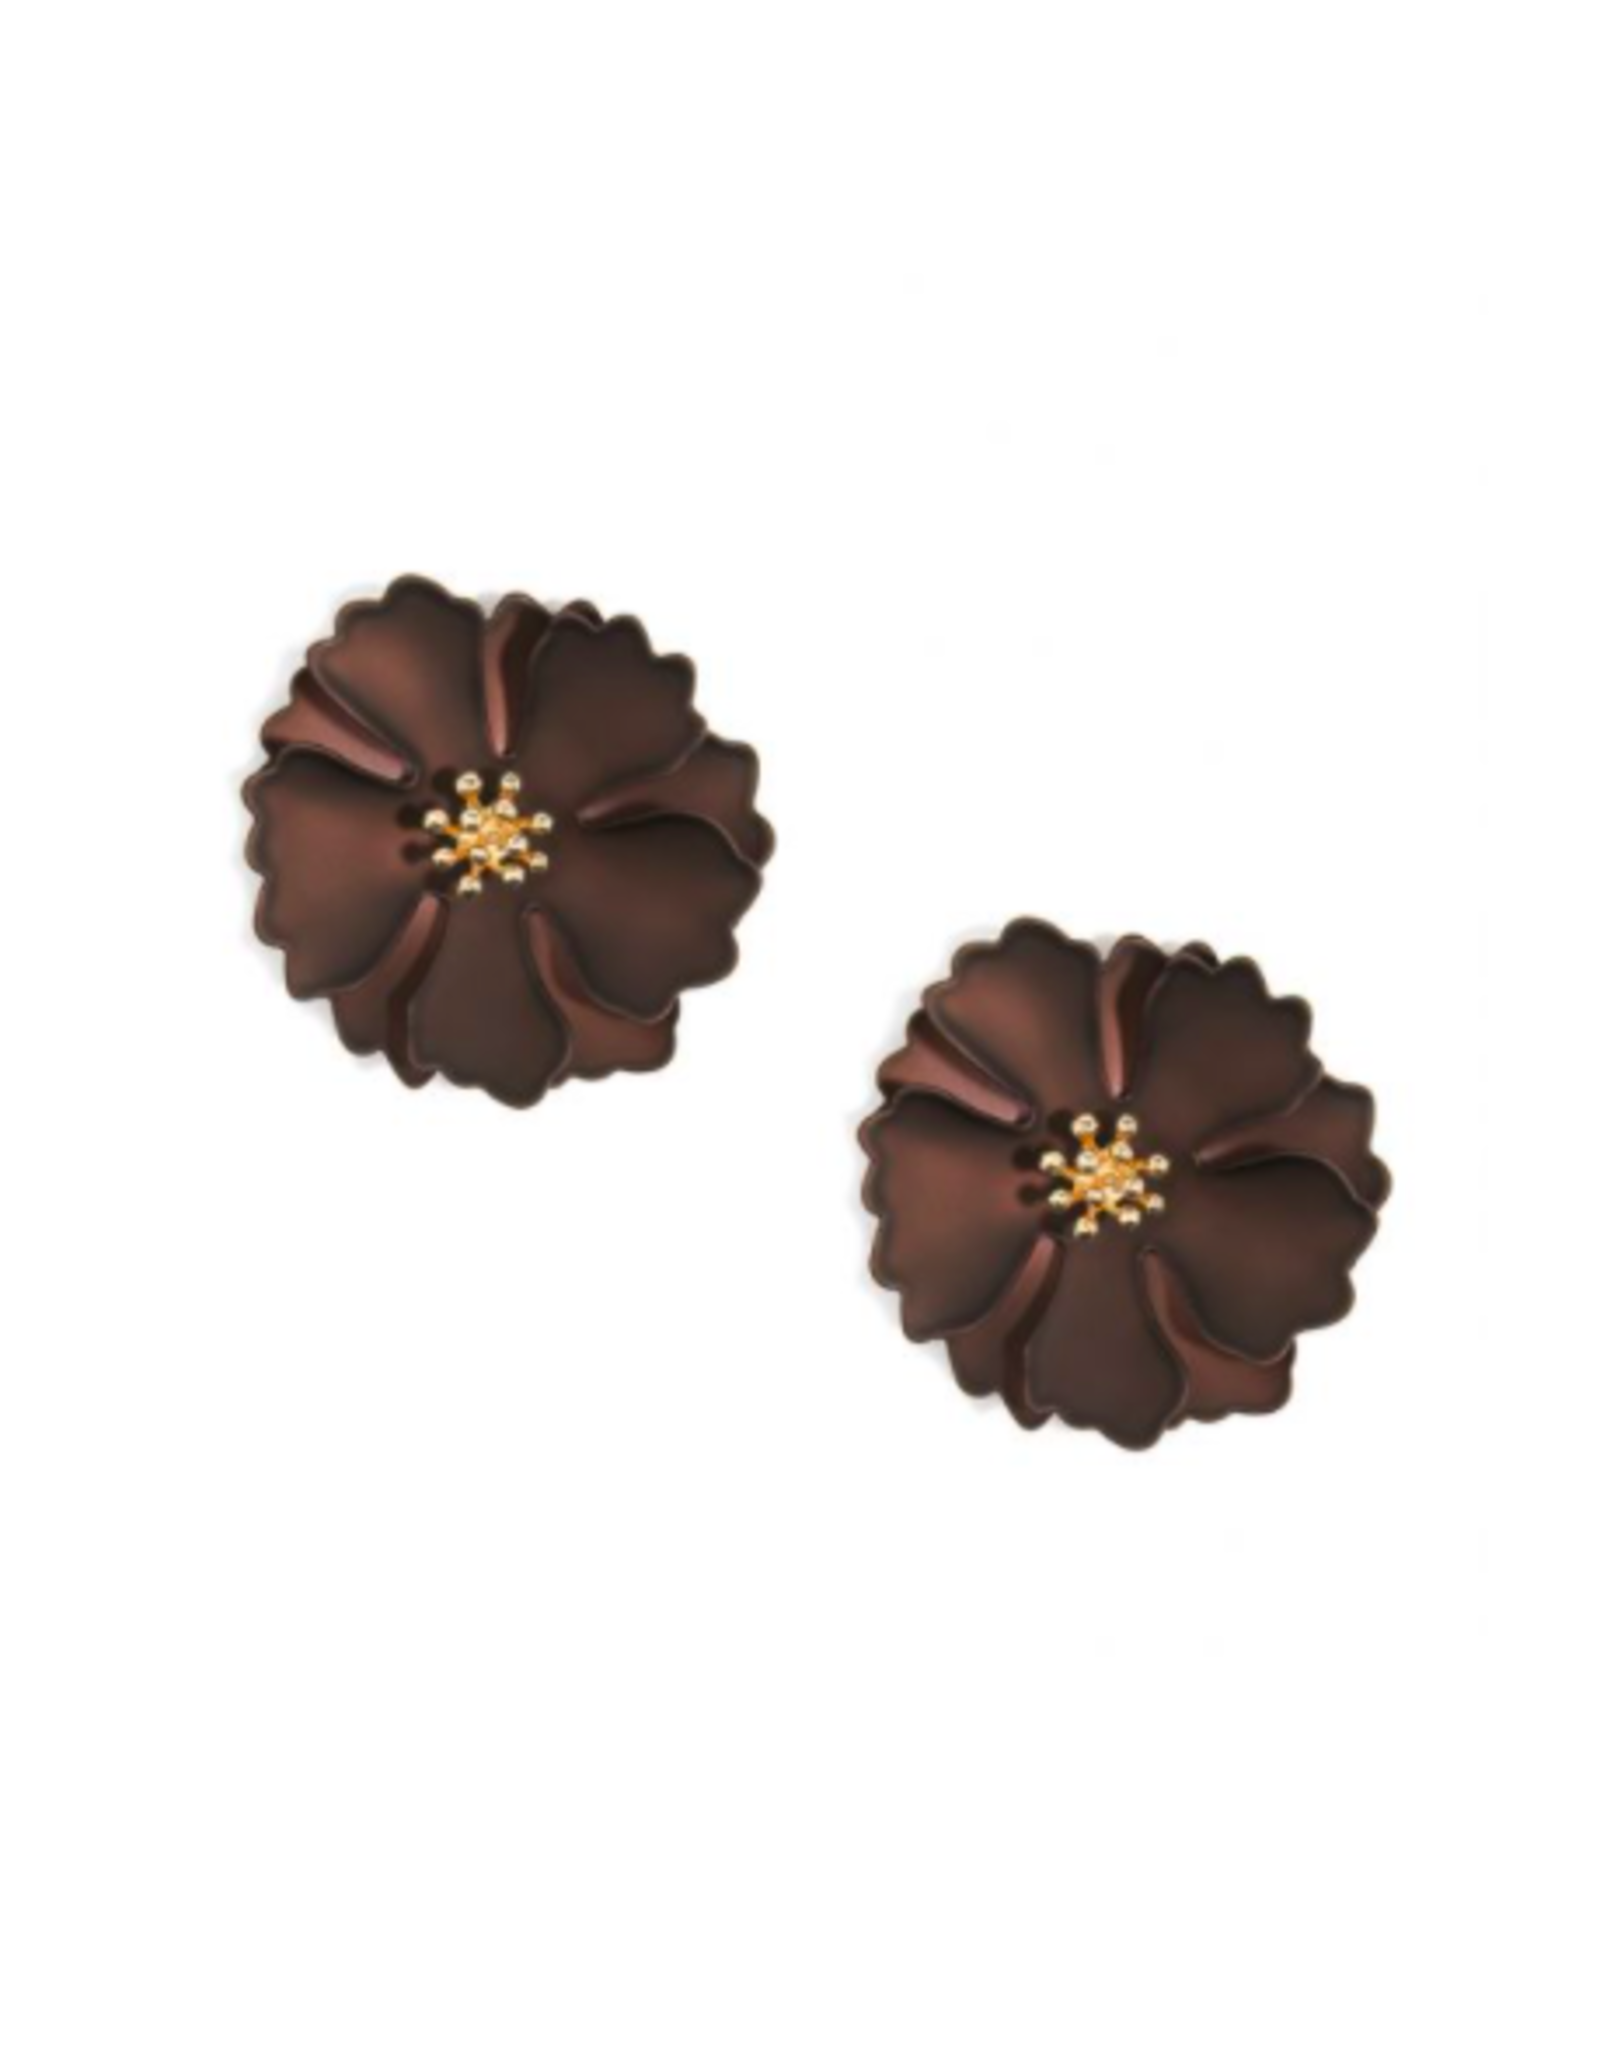 Zenzii Metallic Camellia Earring in Brown